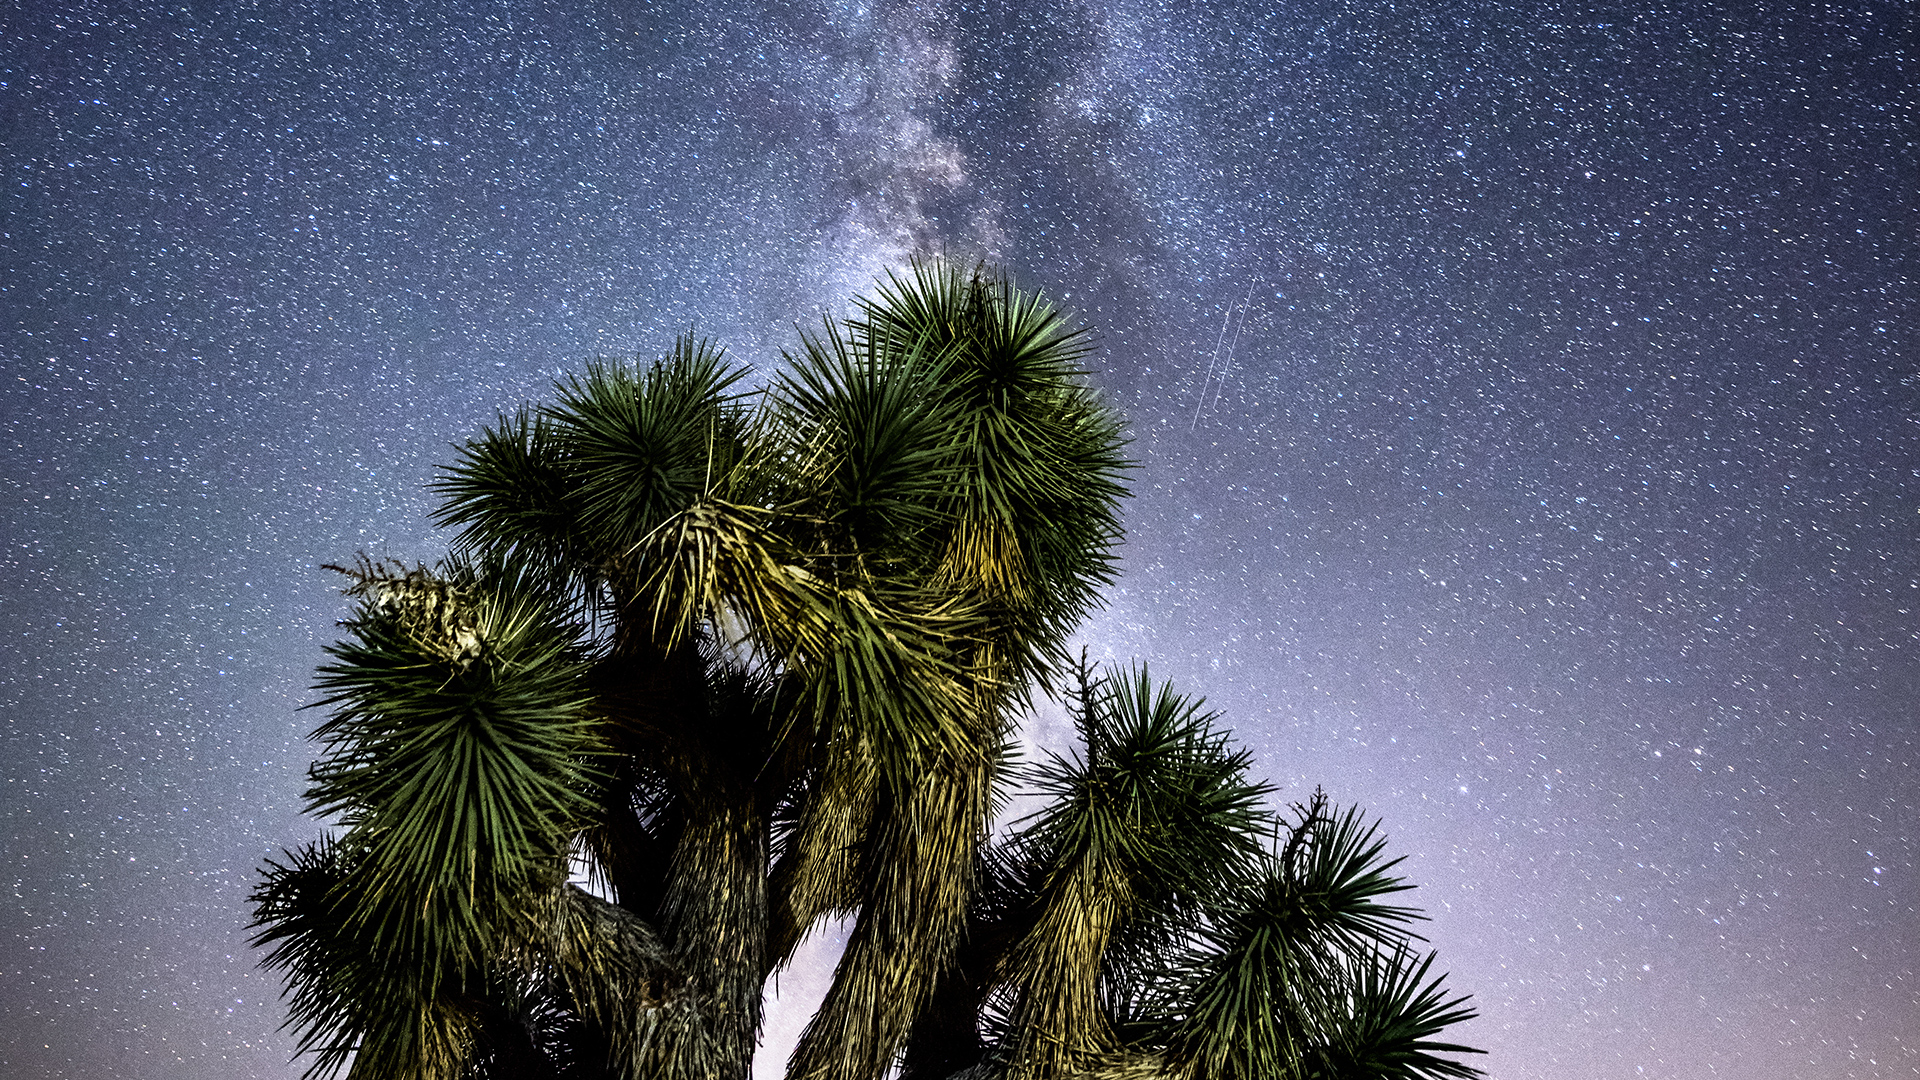 Milky Way view above a Joshua tree